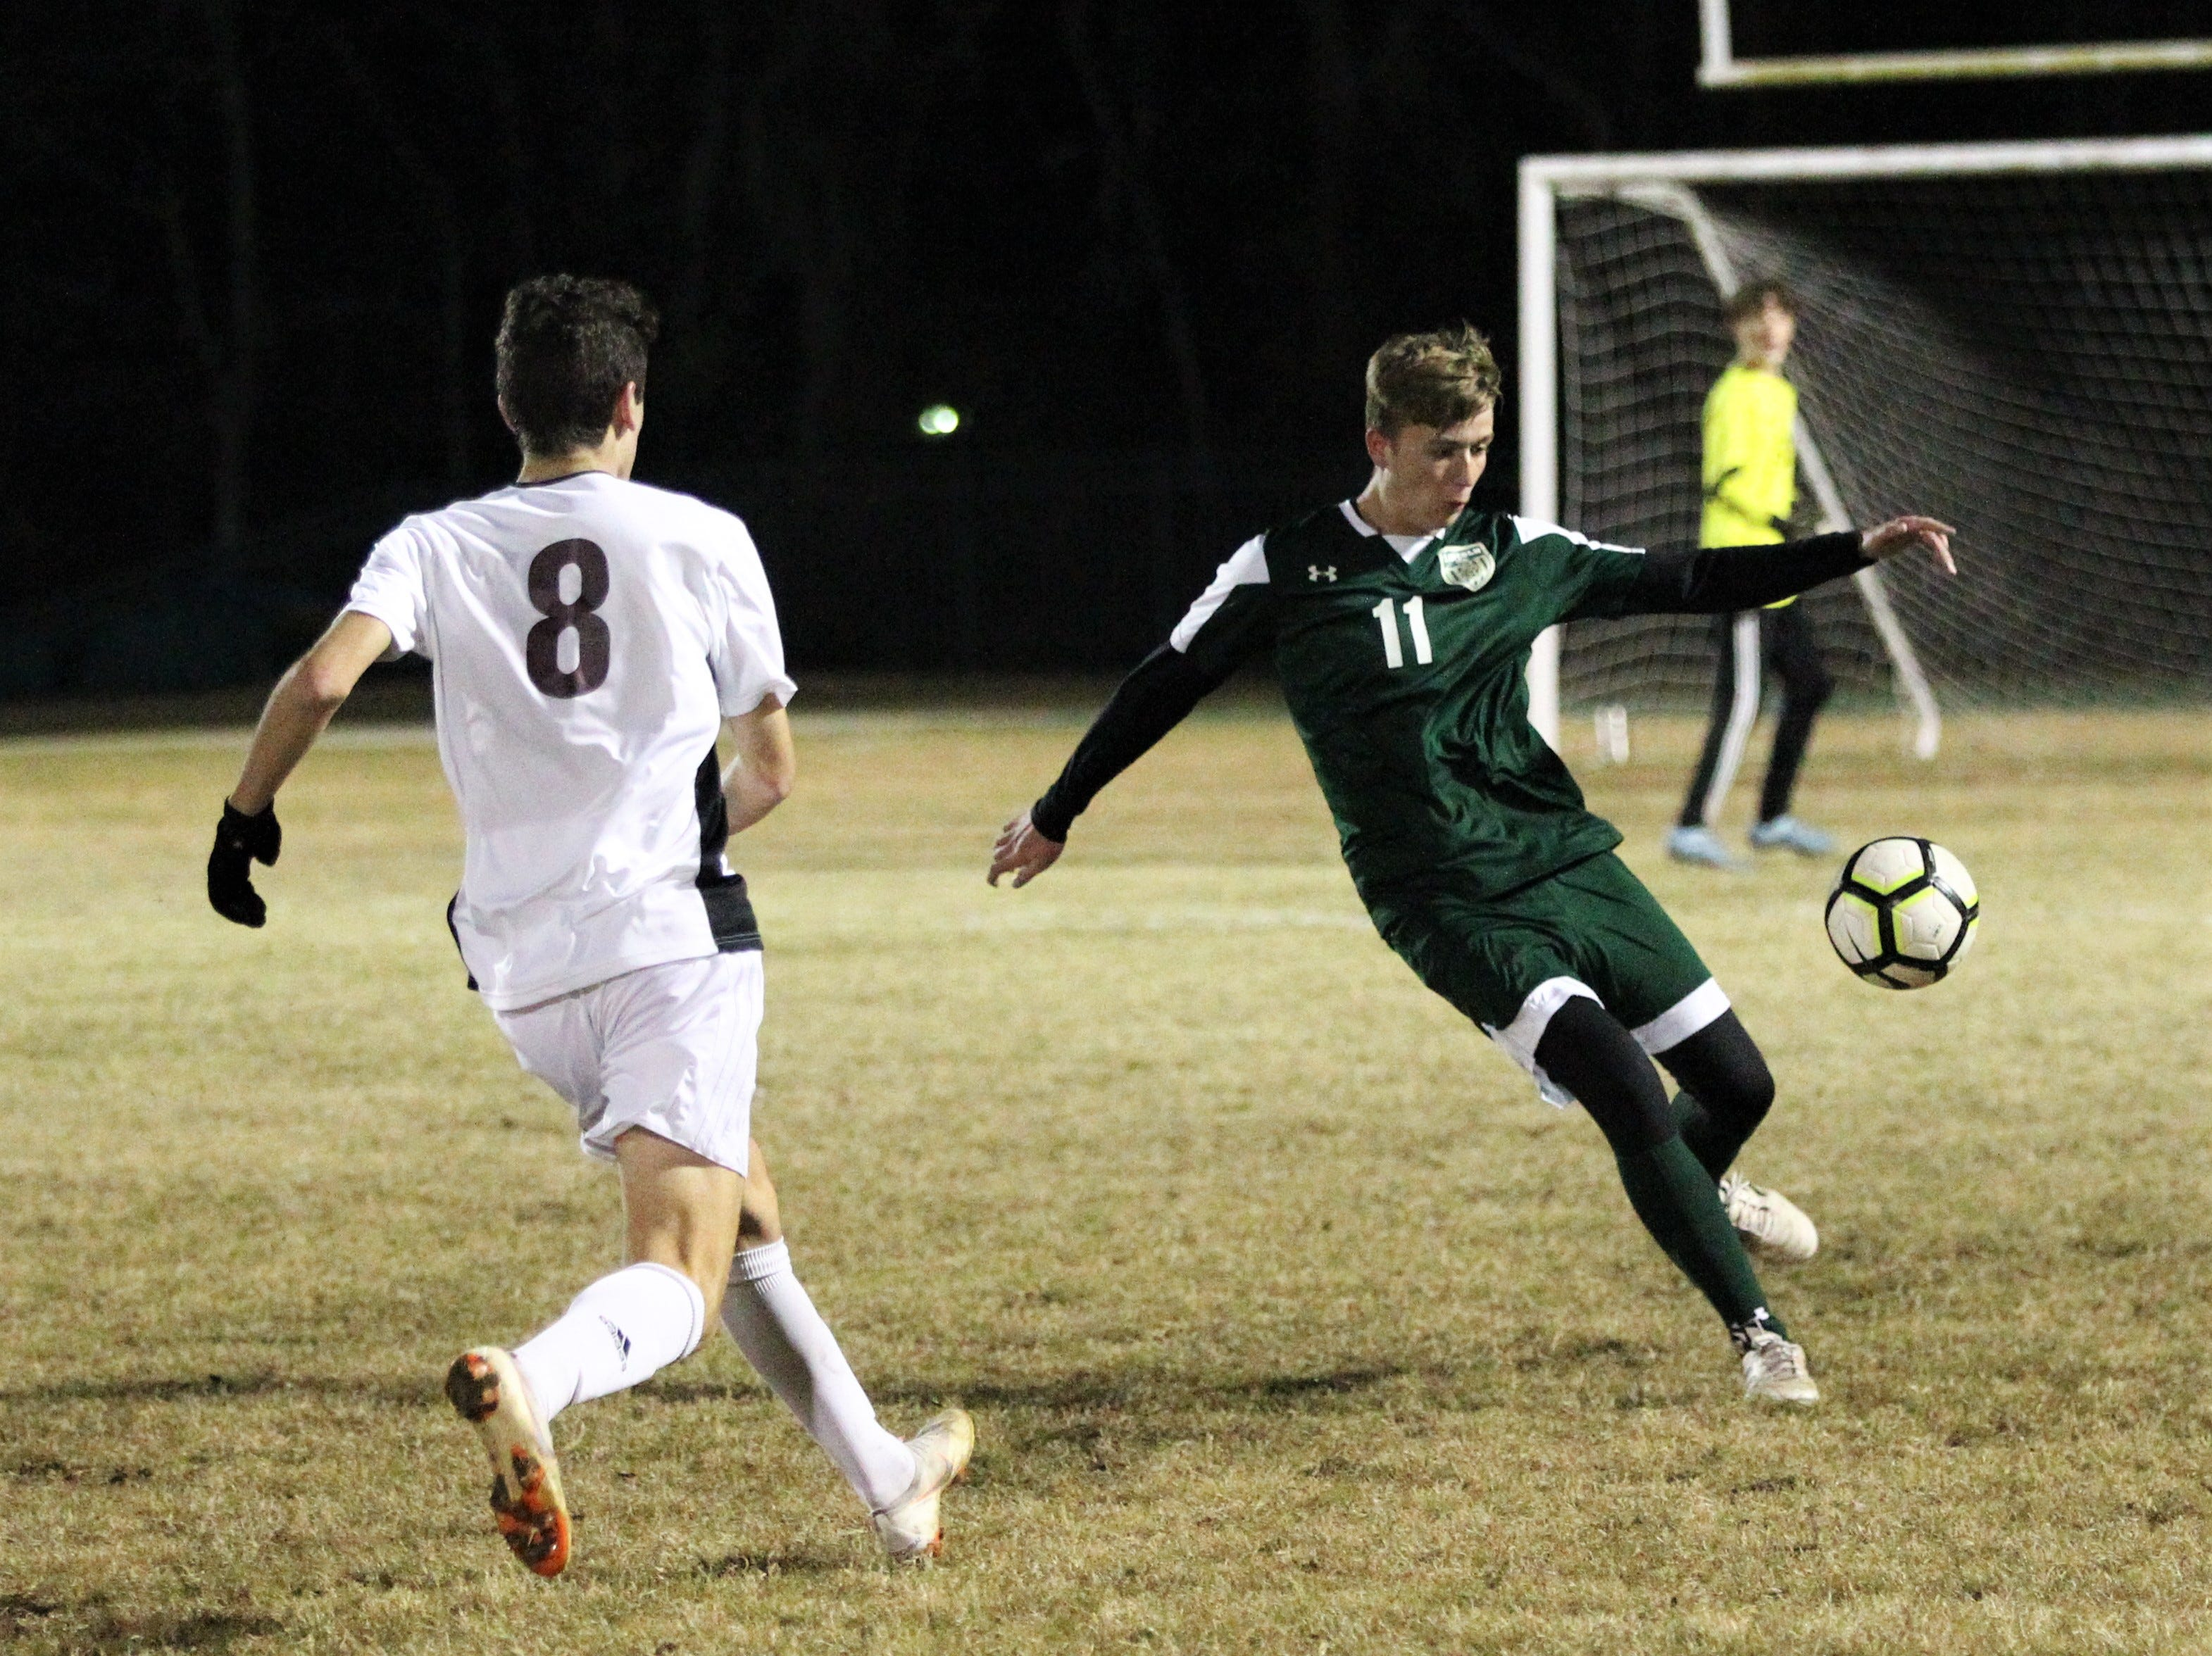 Lincoln defender Brantley Snowden makes a clearance attempt as Chiles' boys soccer team beat Lincoln 1-0 in a District 2-4A semifinal on Jan. 30, 2019.